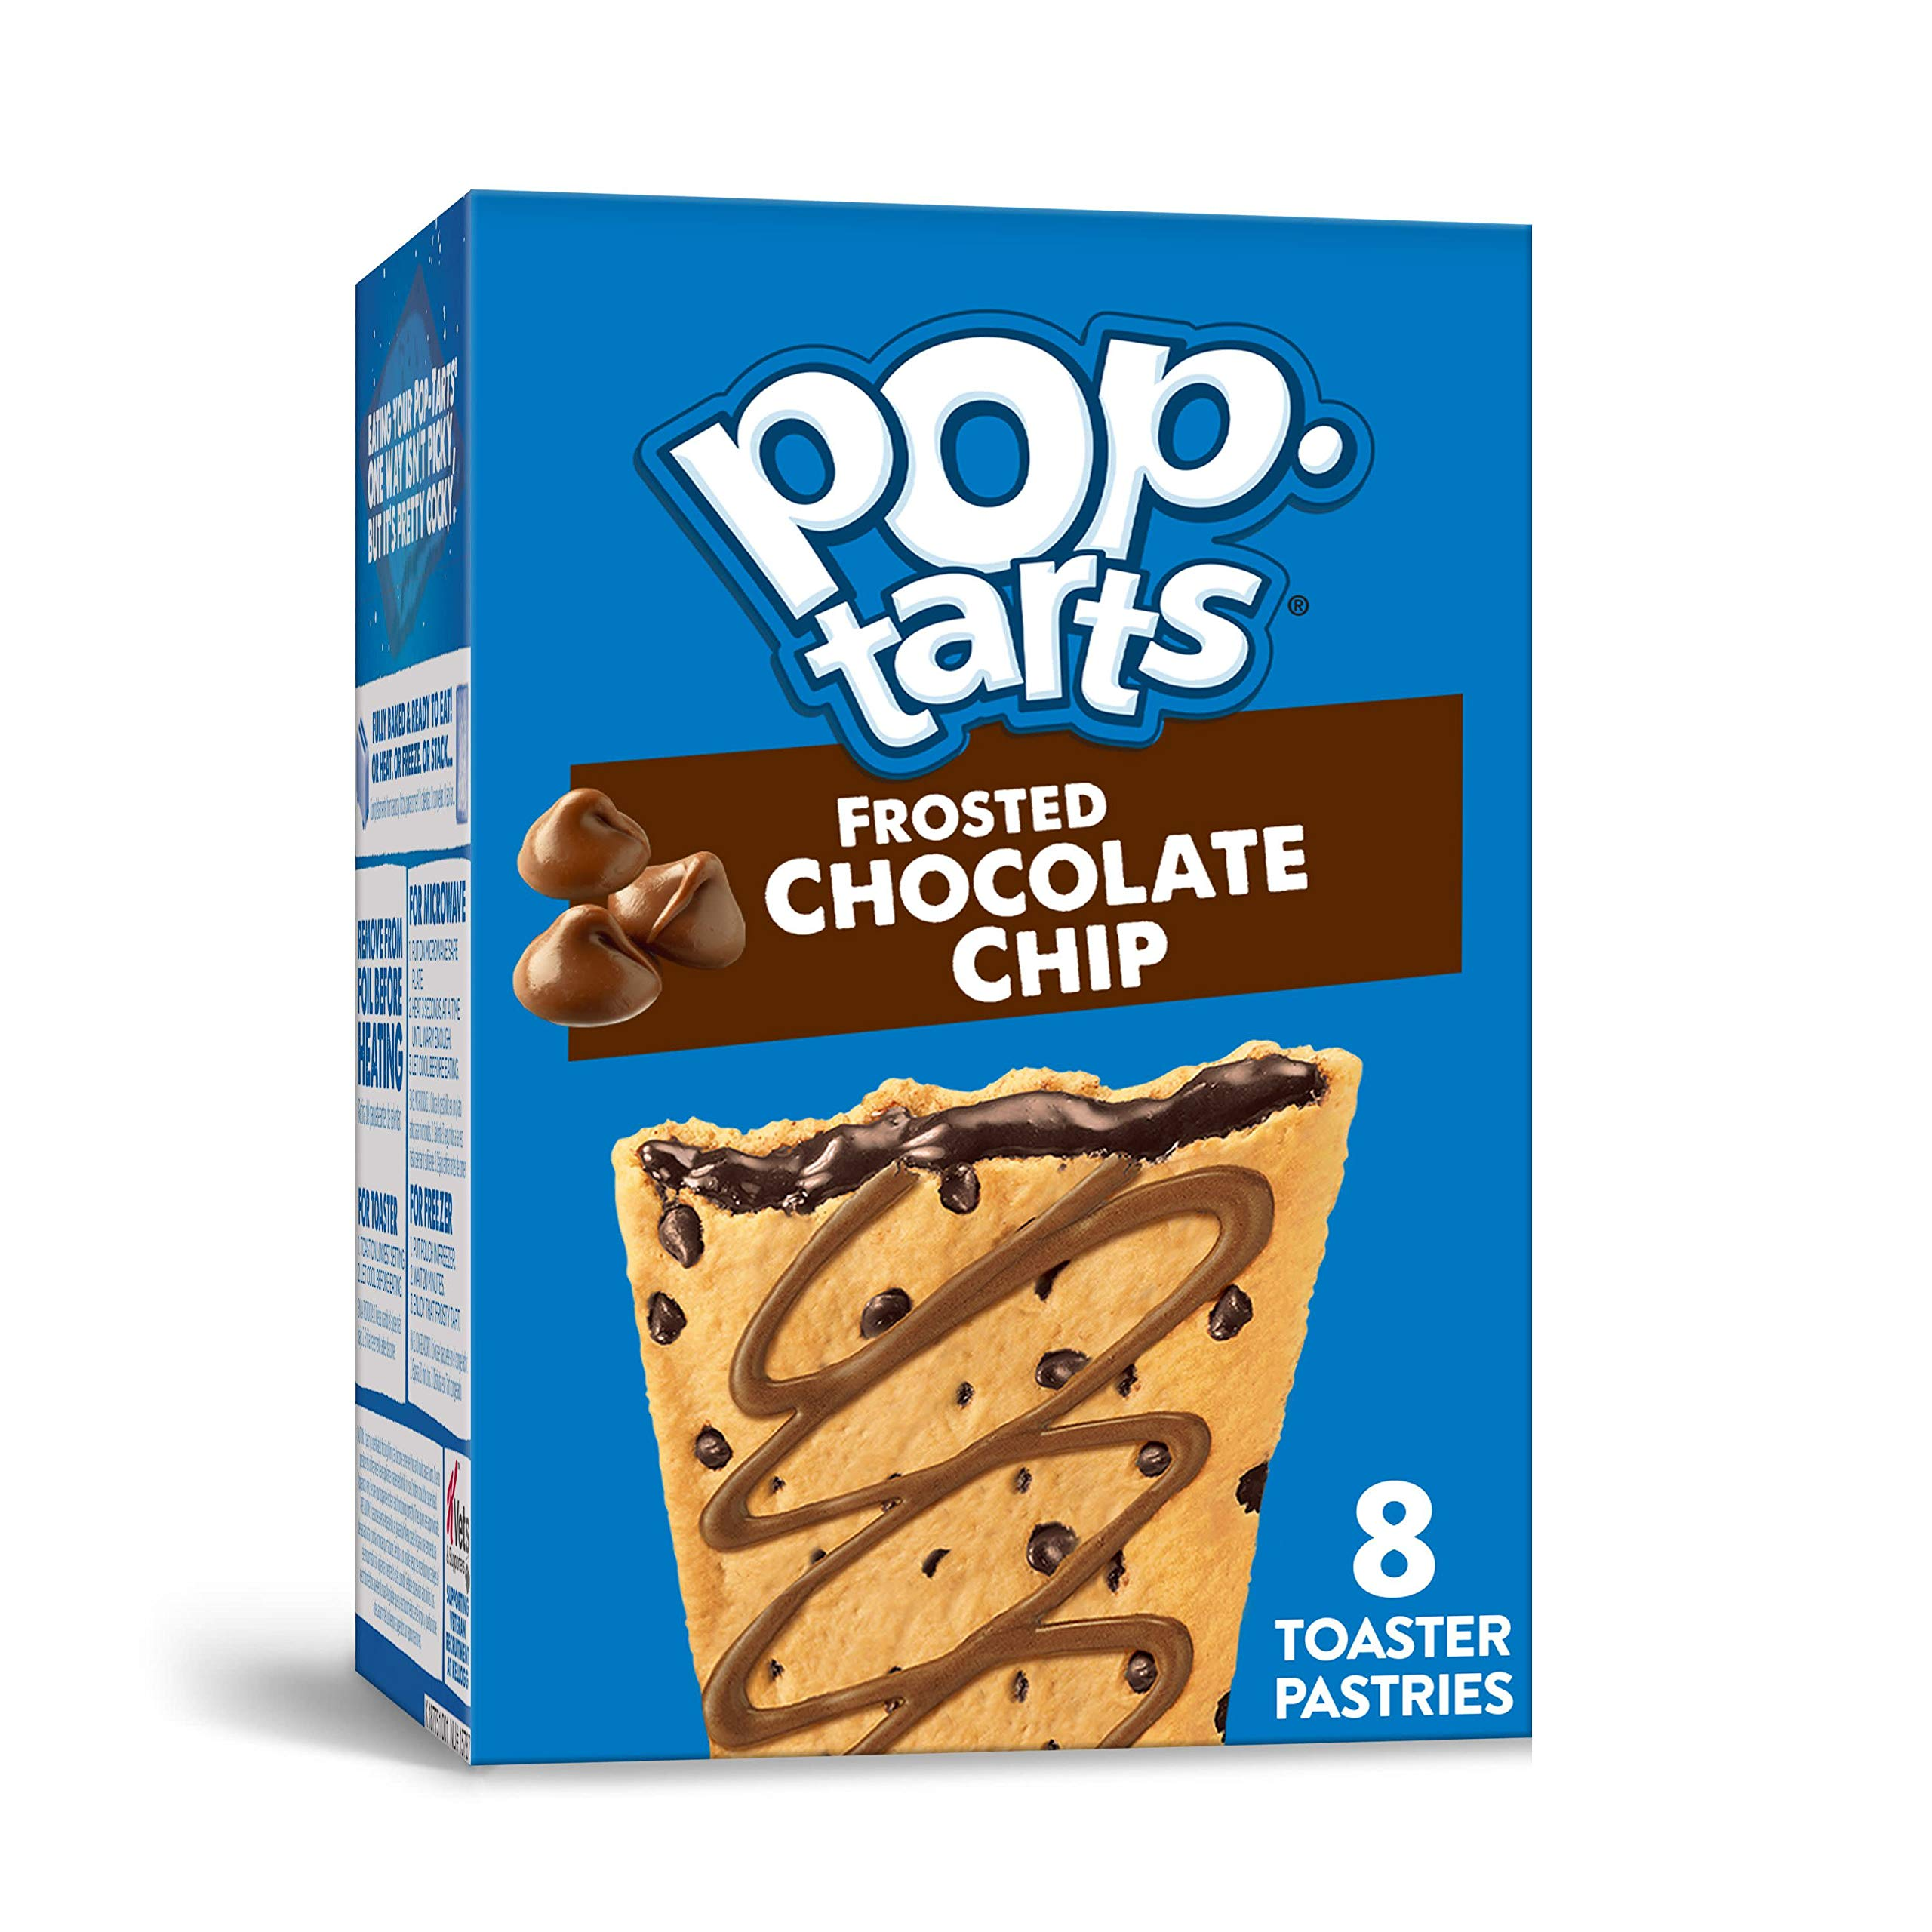 Pop-Tarts, Breakfast Toaster Pastries, Frosted Chocolate Chip, Proudly Baked in the USA, 13.5oz Box (4 Count)